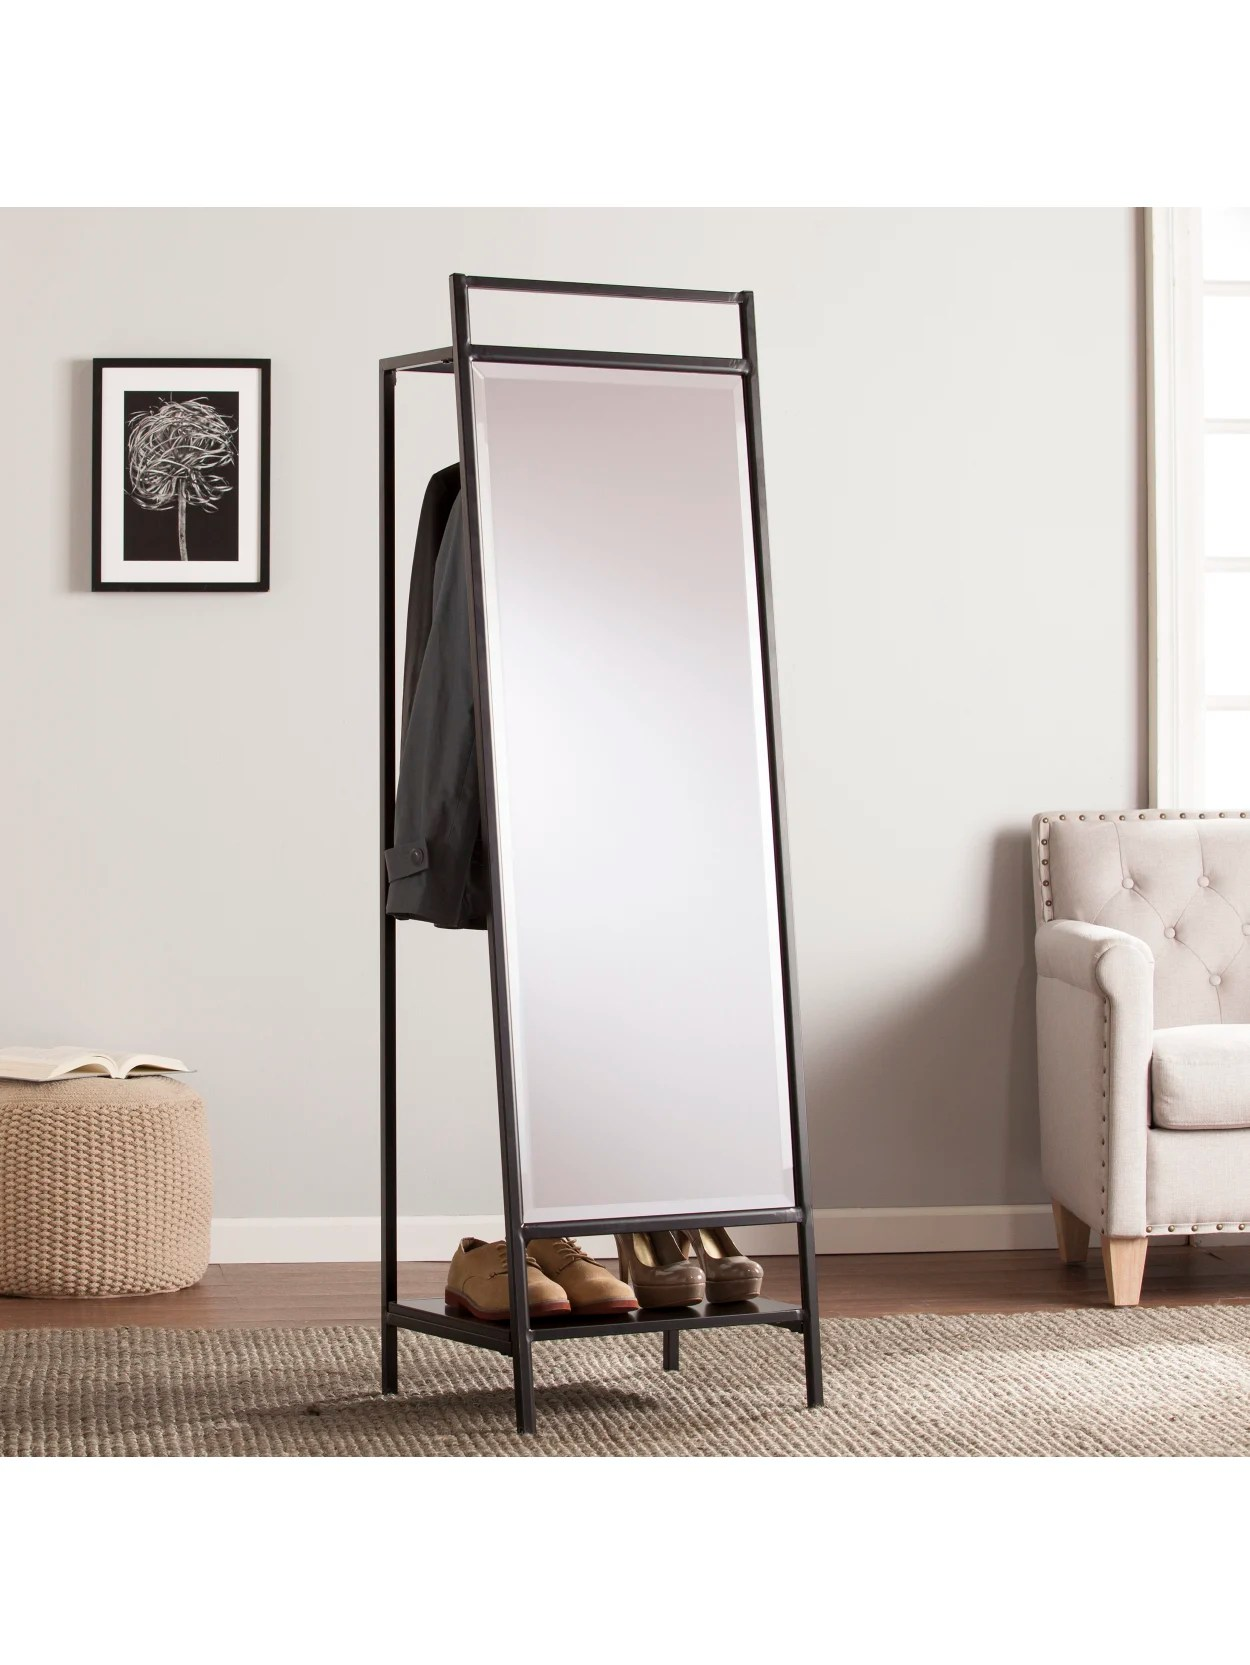 Southern Enterprises Drake Mirror With Hidden Coat Rack 65 H X 19 34 W X 16 34 D Black Office Depot